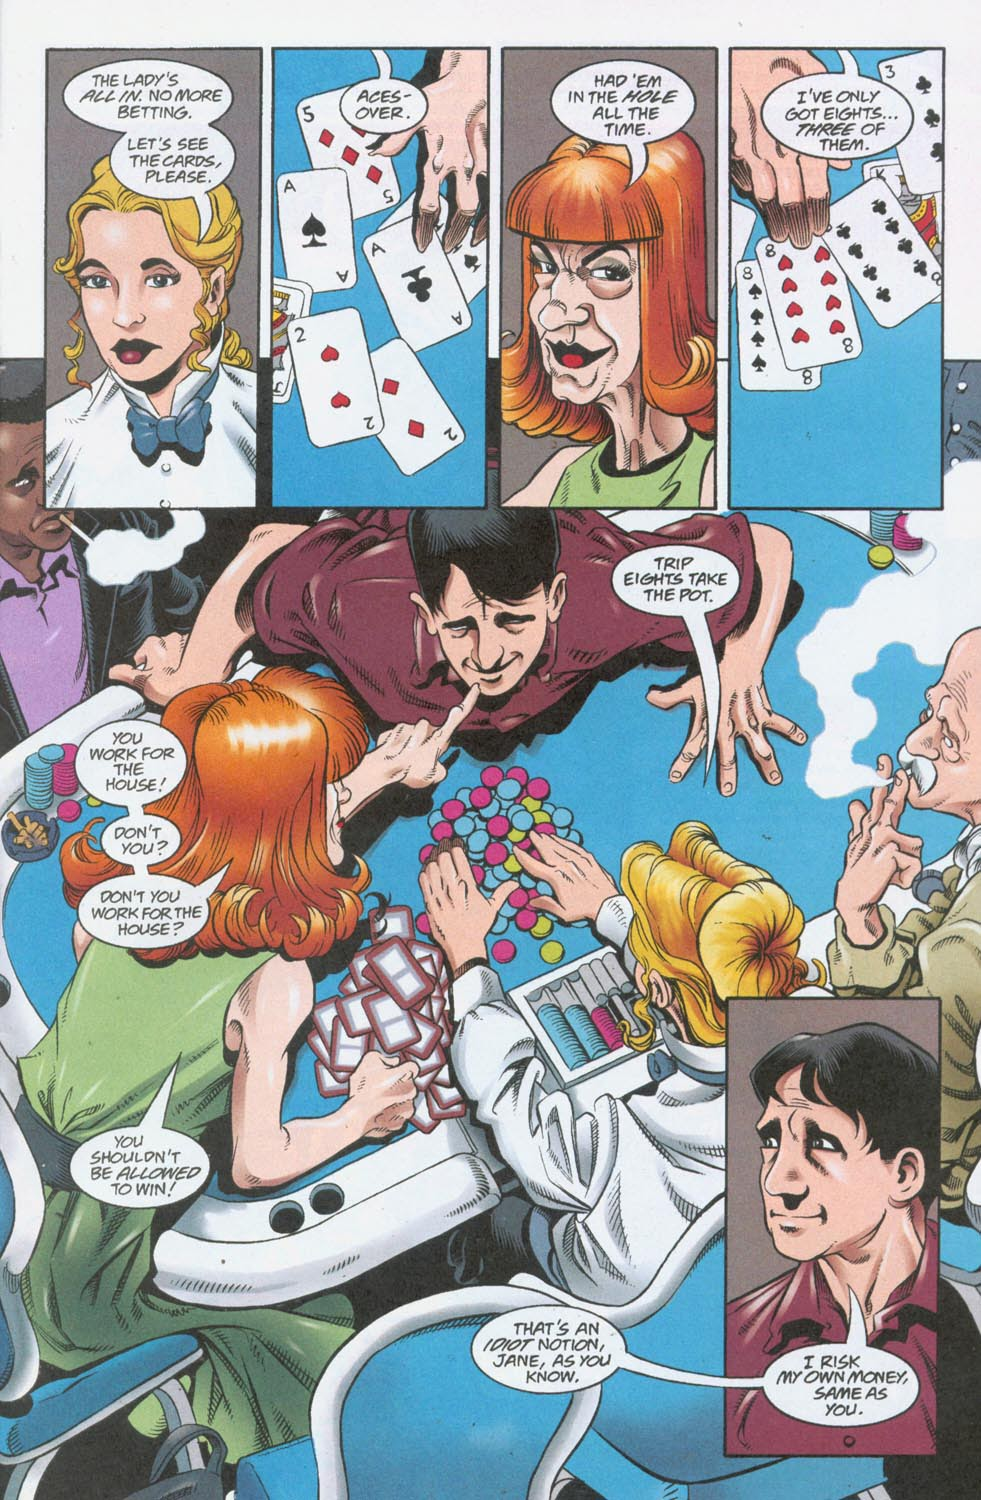 Proposition Player graphic novel review